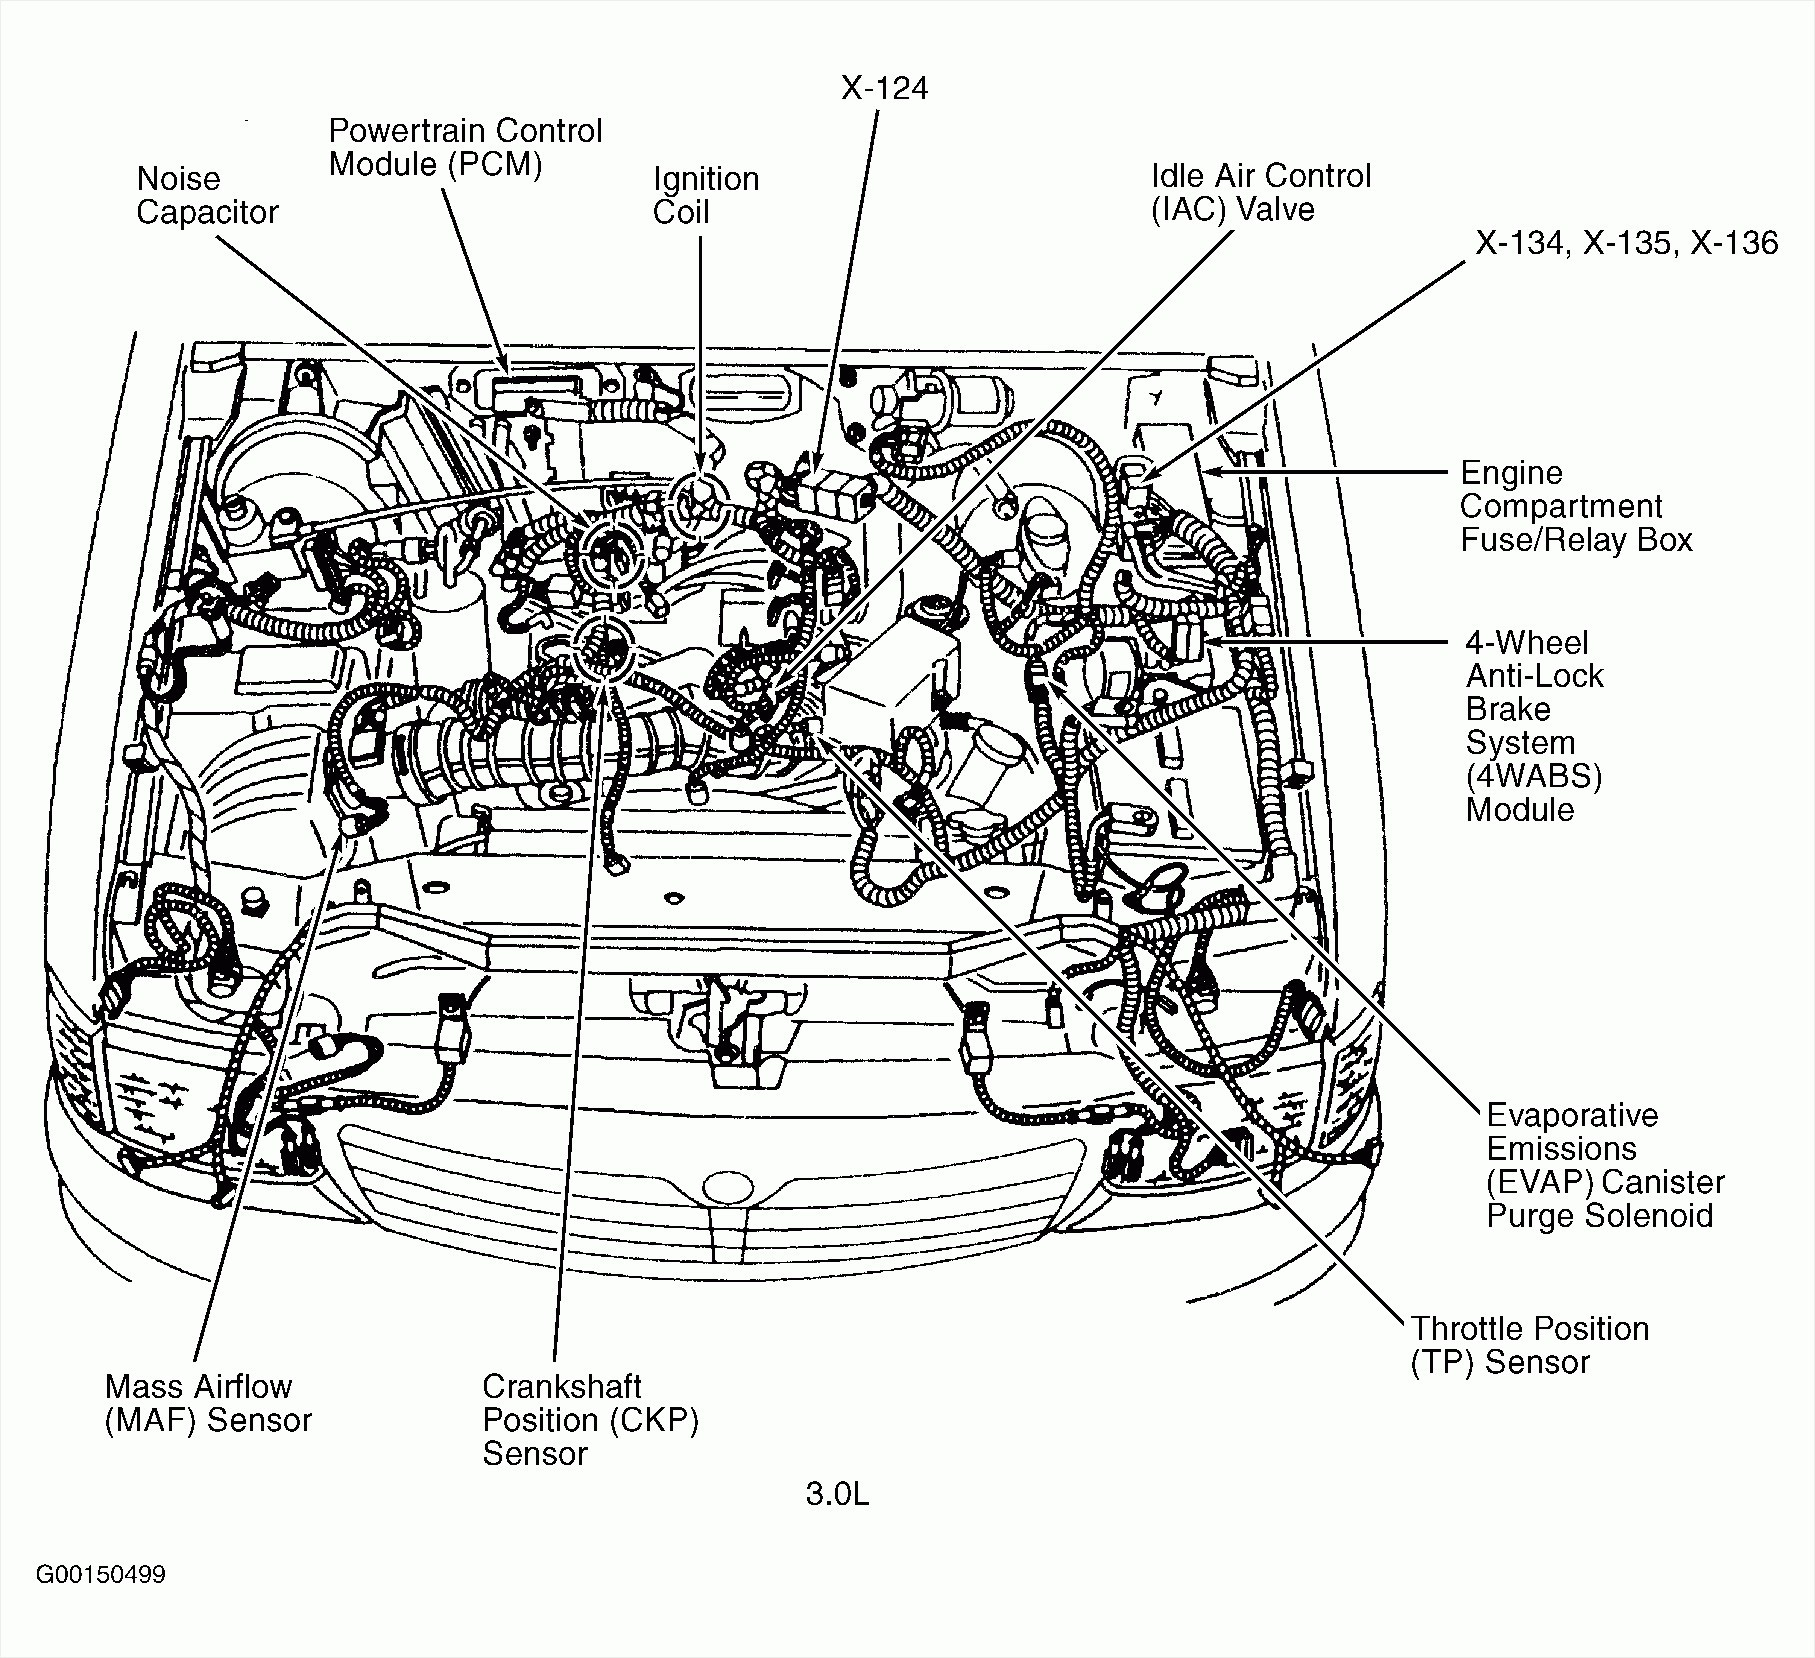 hight resolution of ford 4 0 sohc engine diagram wiring diagram ford 4 0 v6 engine diagram 1996